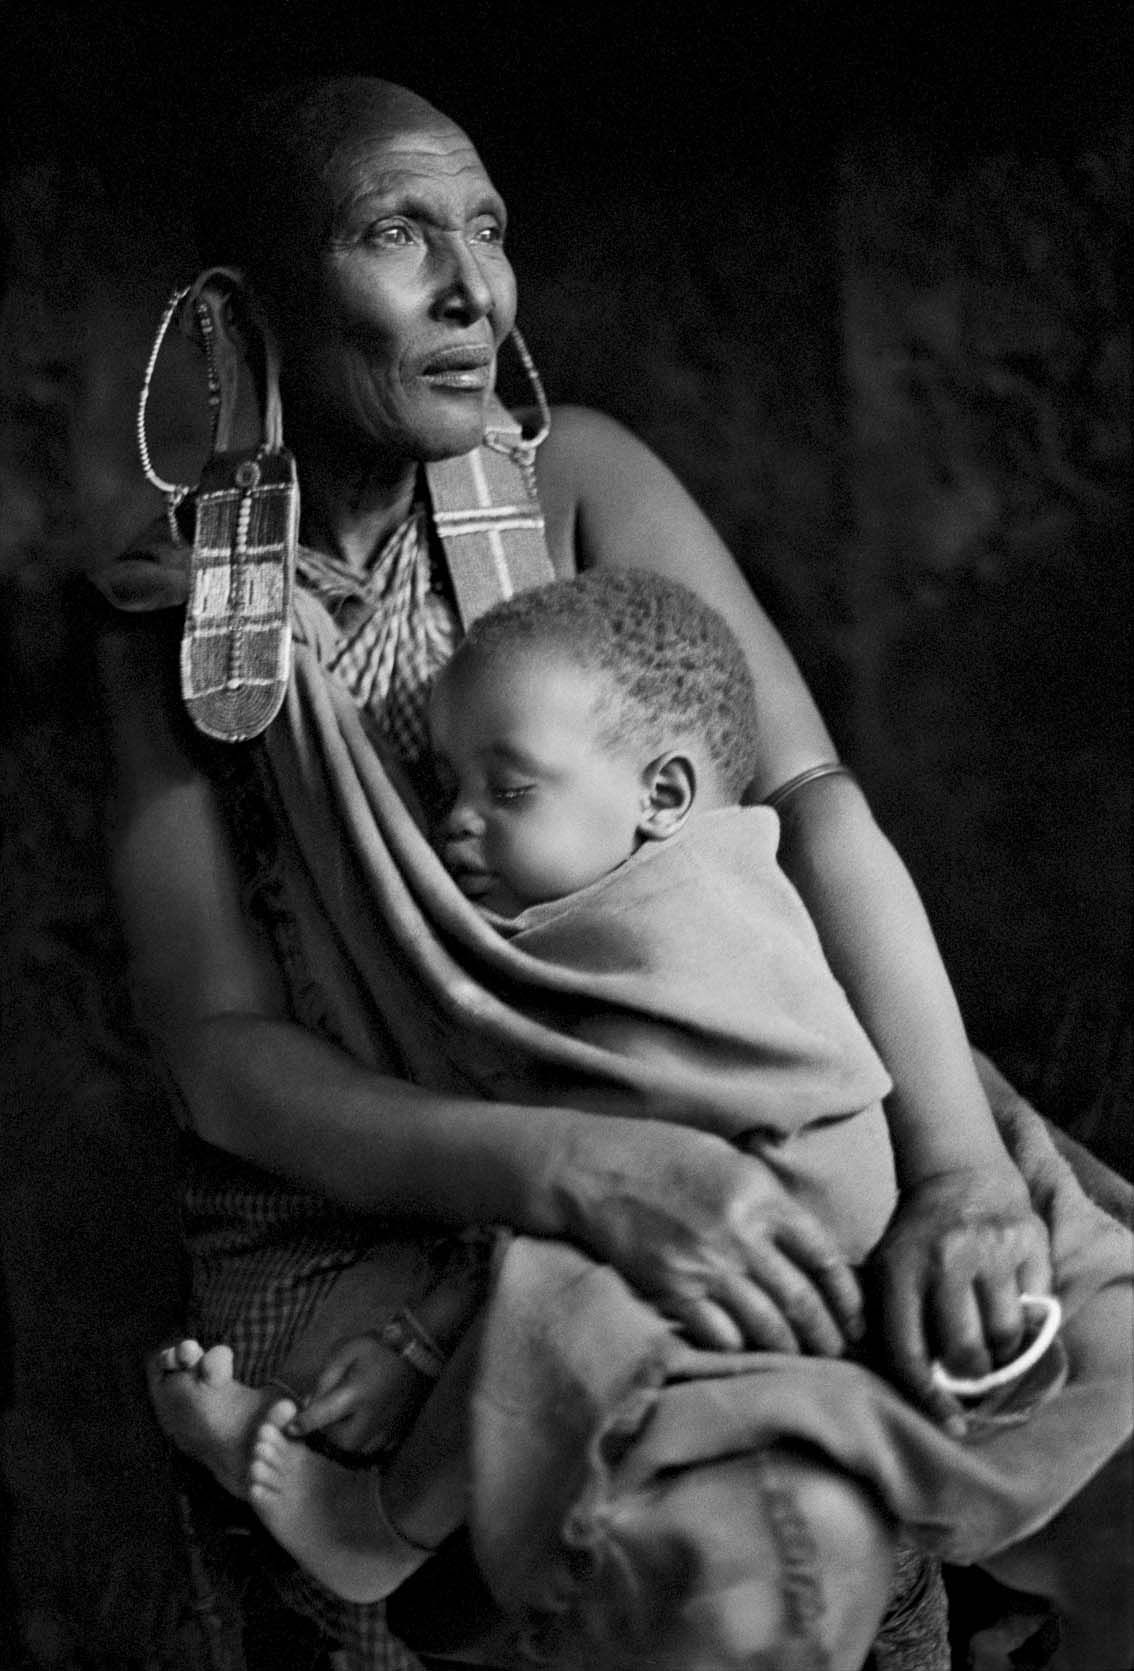 Africa masai grandmother with grandchild caroline halley